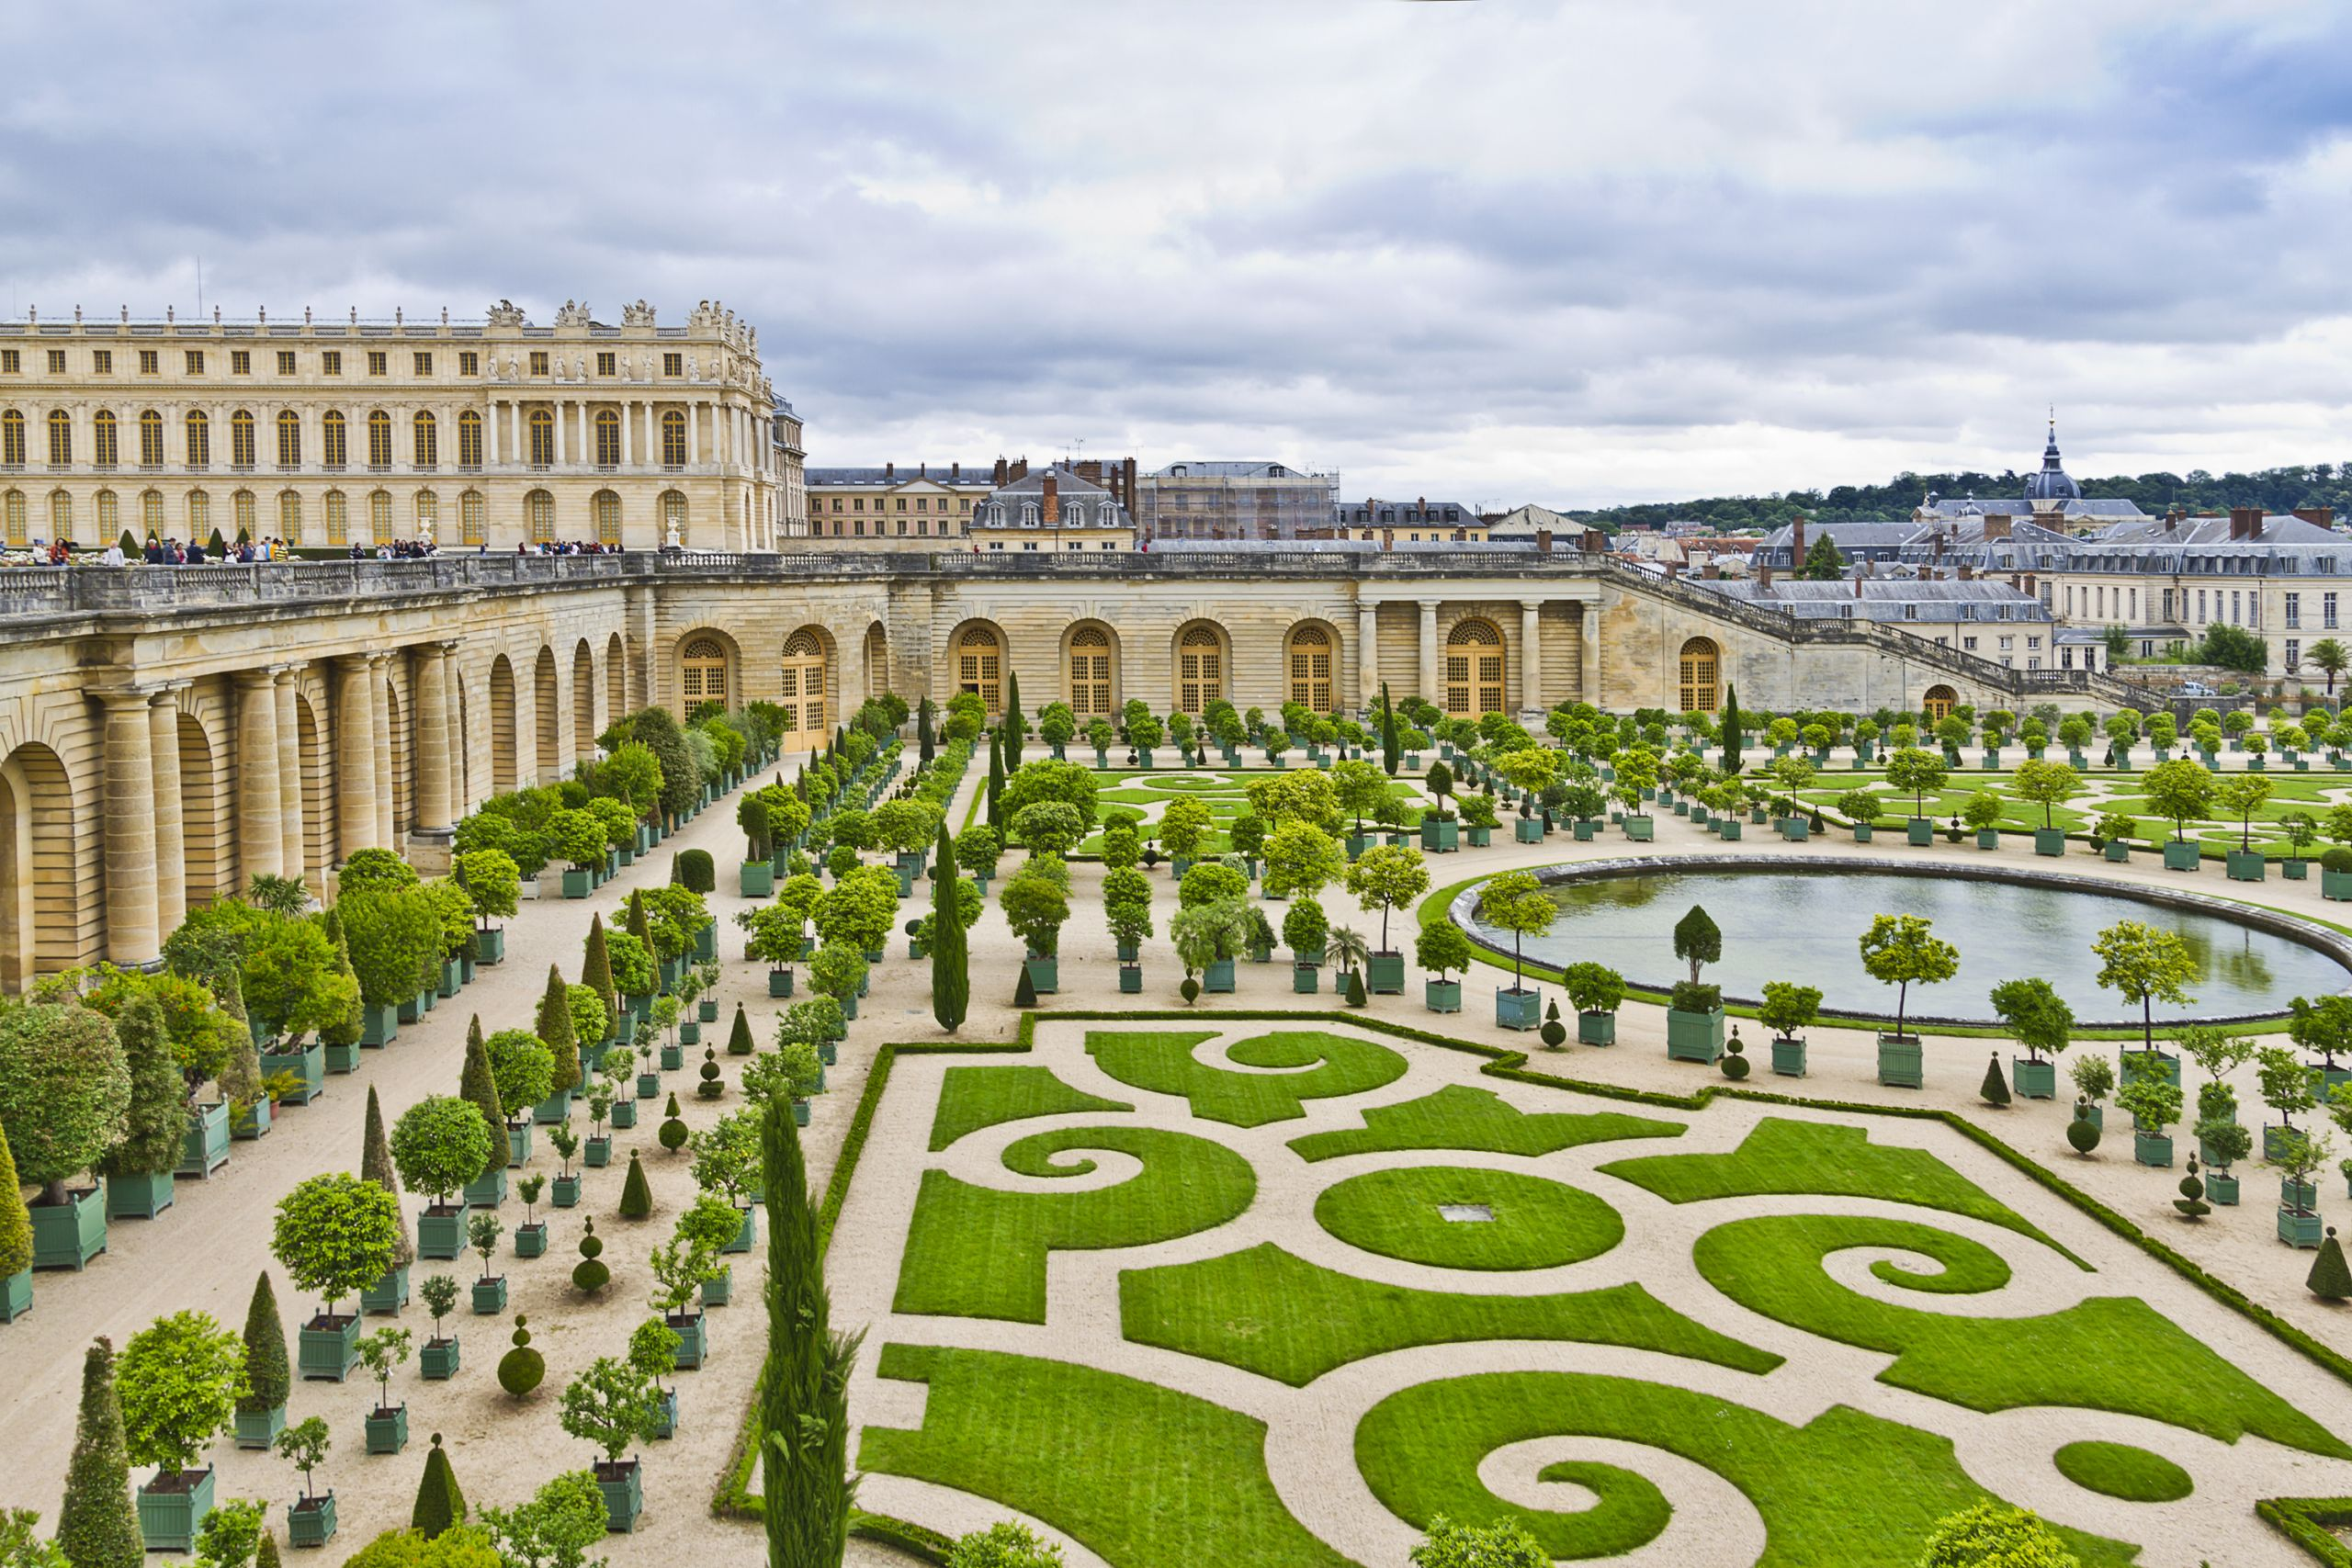 Palace of Versailles orangery designed by Louis Le Vau c KievVictor shutterstock